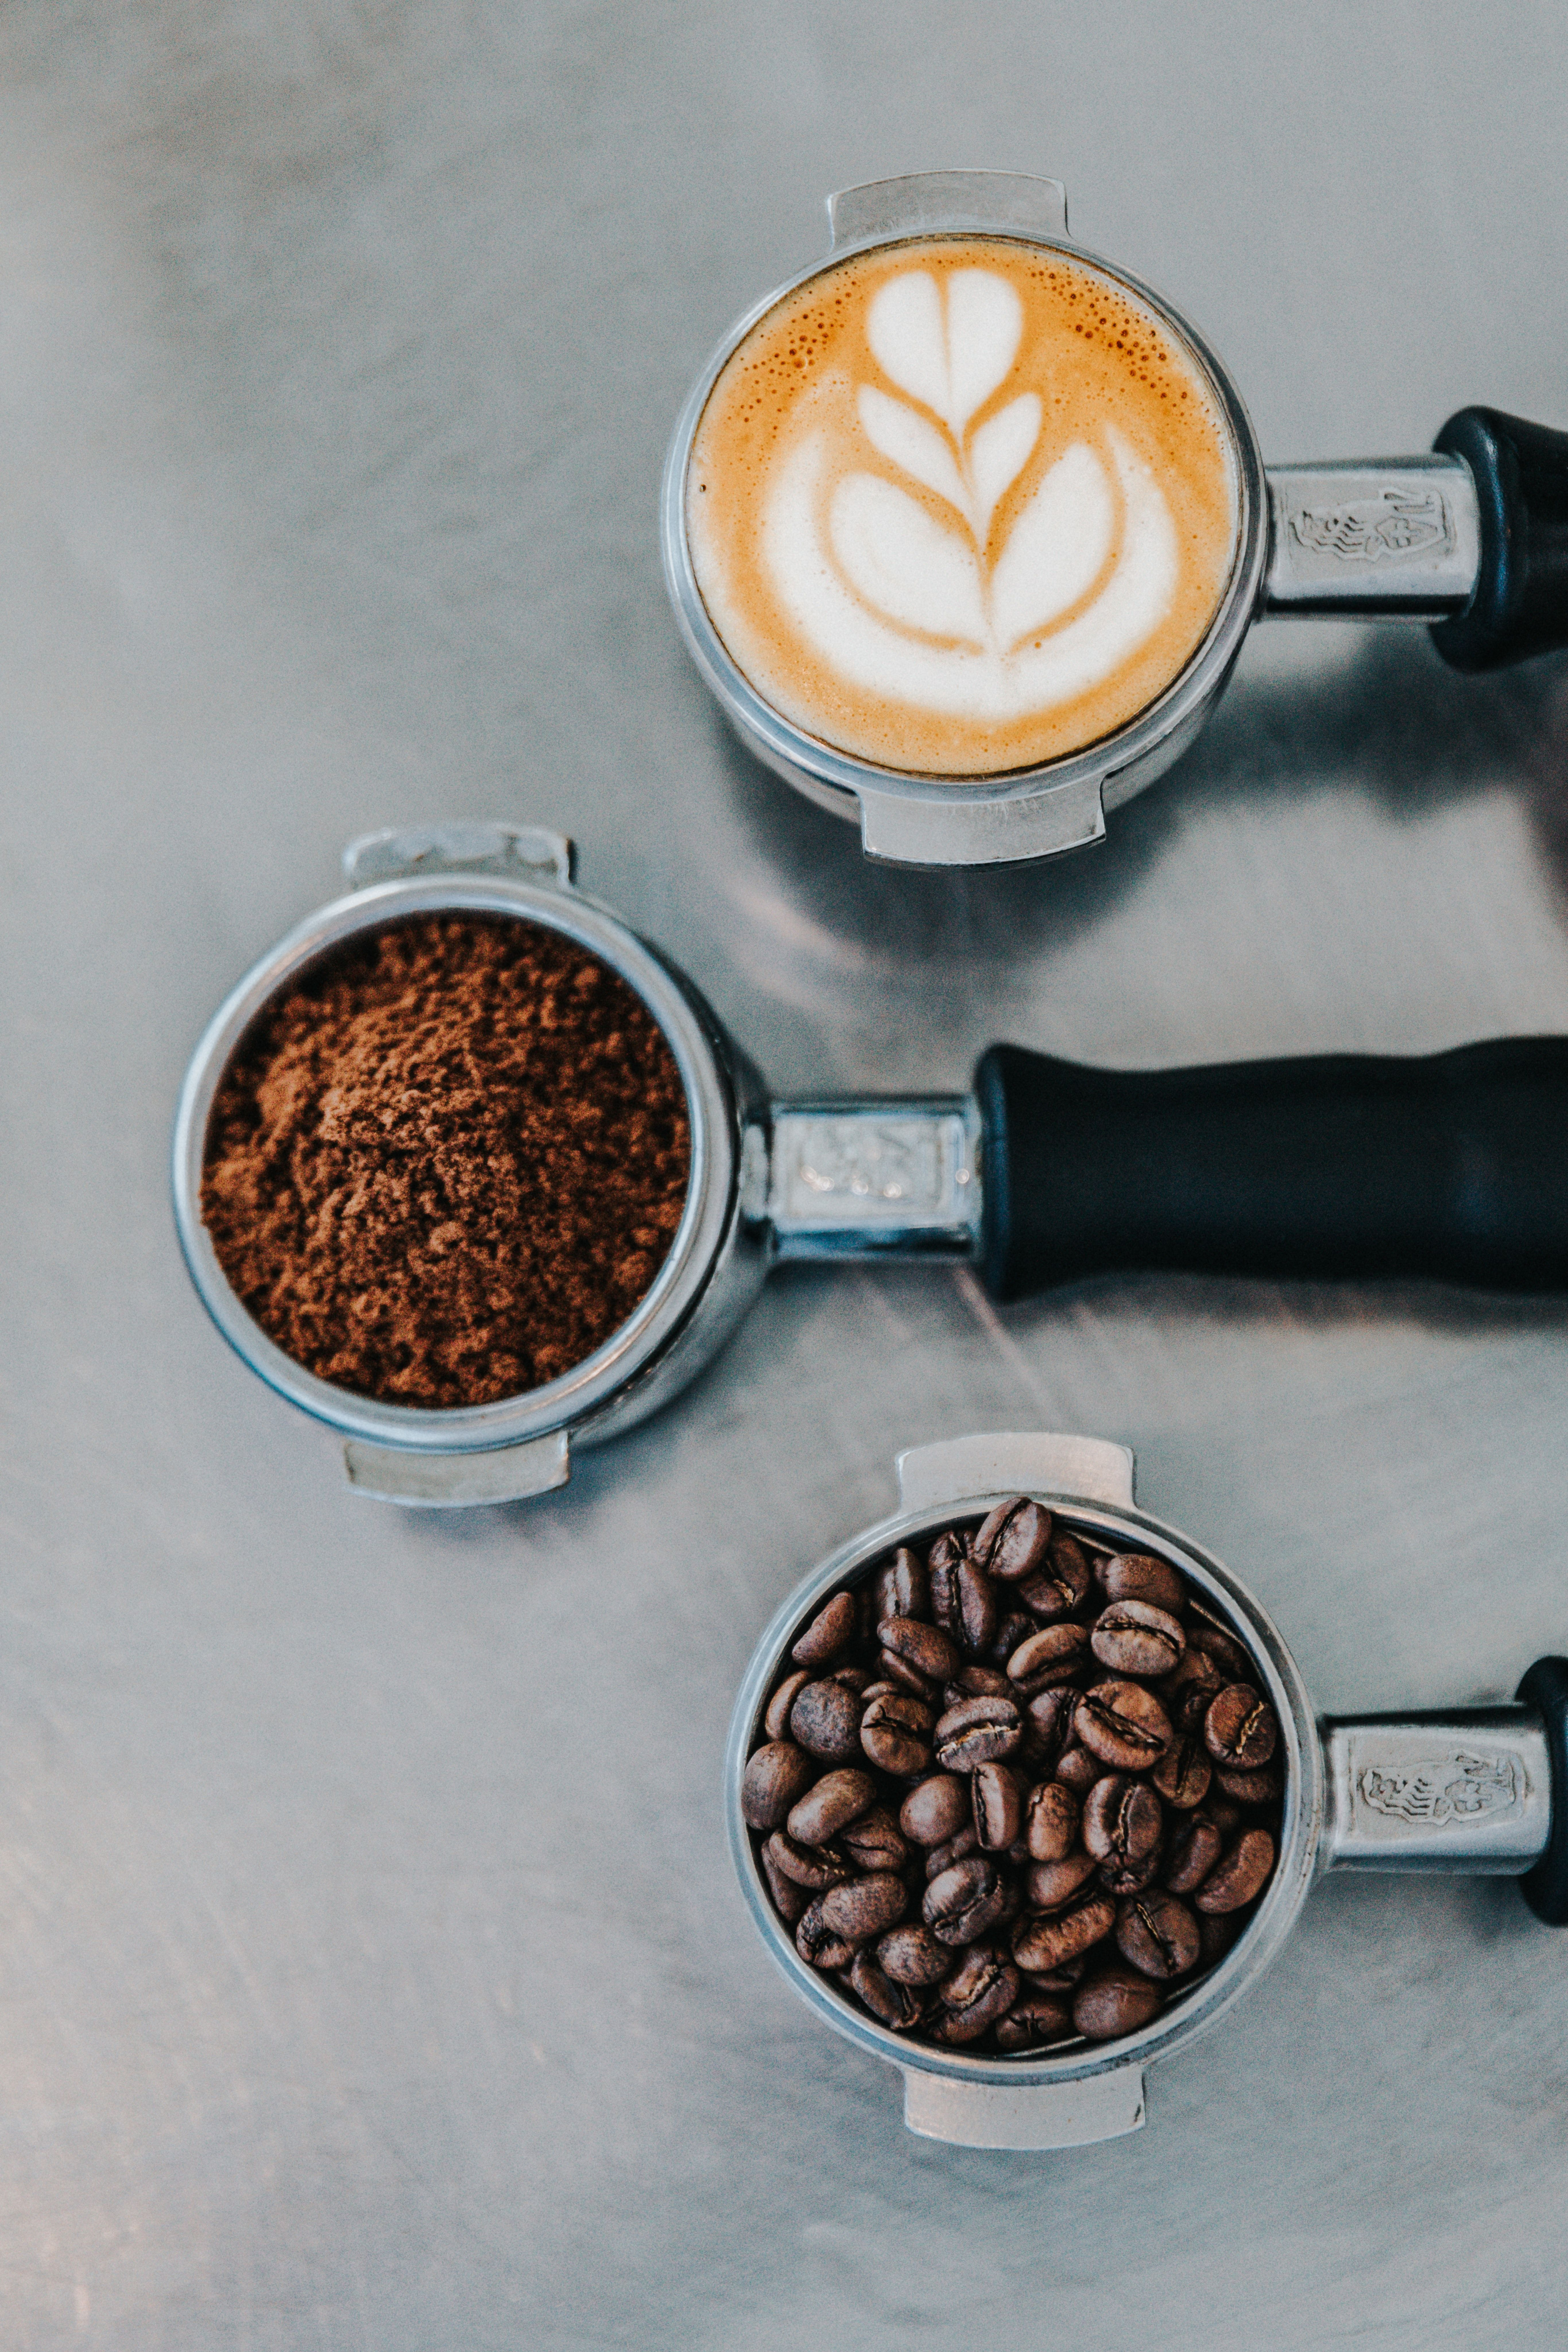 Coffee Beans Cafe And Coffee Shop Hd Photo By Nathan Dumlao Nate Dumlao On Unsplash Starting A Coffee Shop Gourmet Coffee Coffee Shop Business